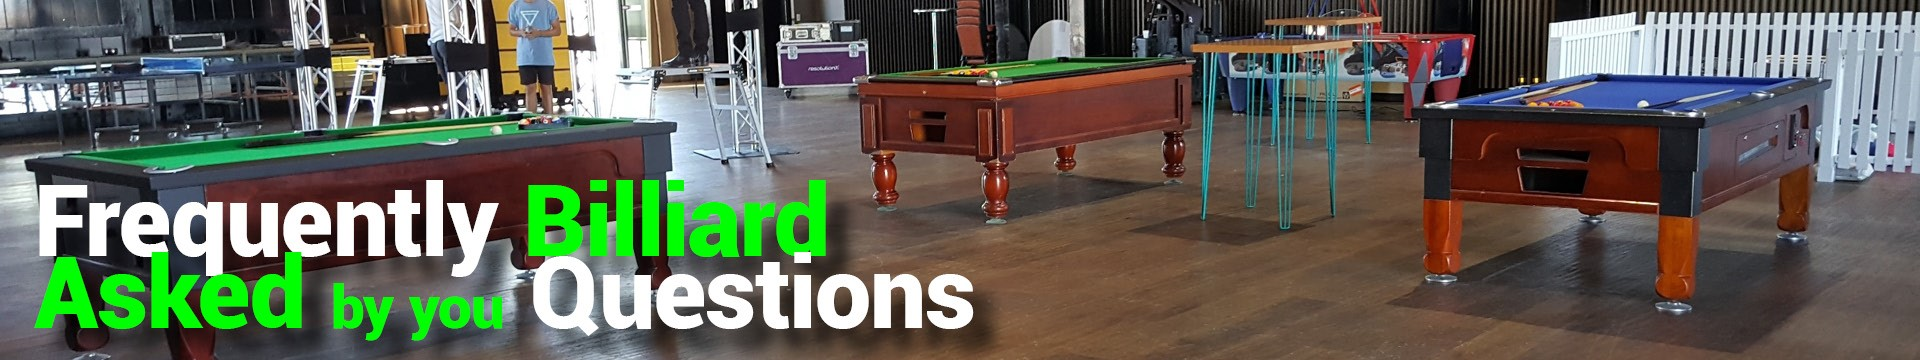 Pool Snooker Biliard Products 017